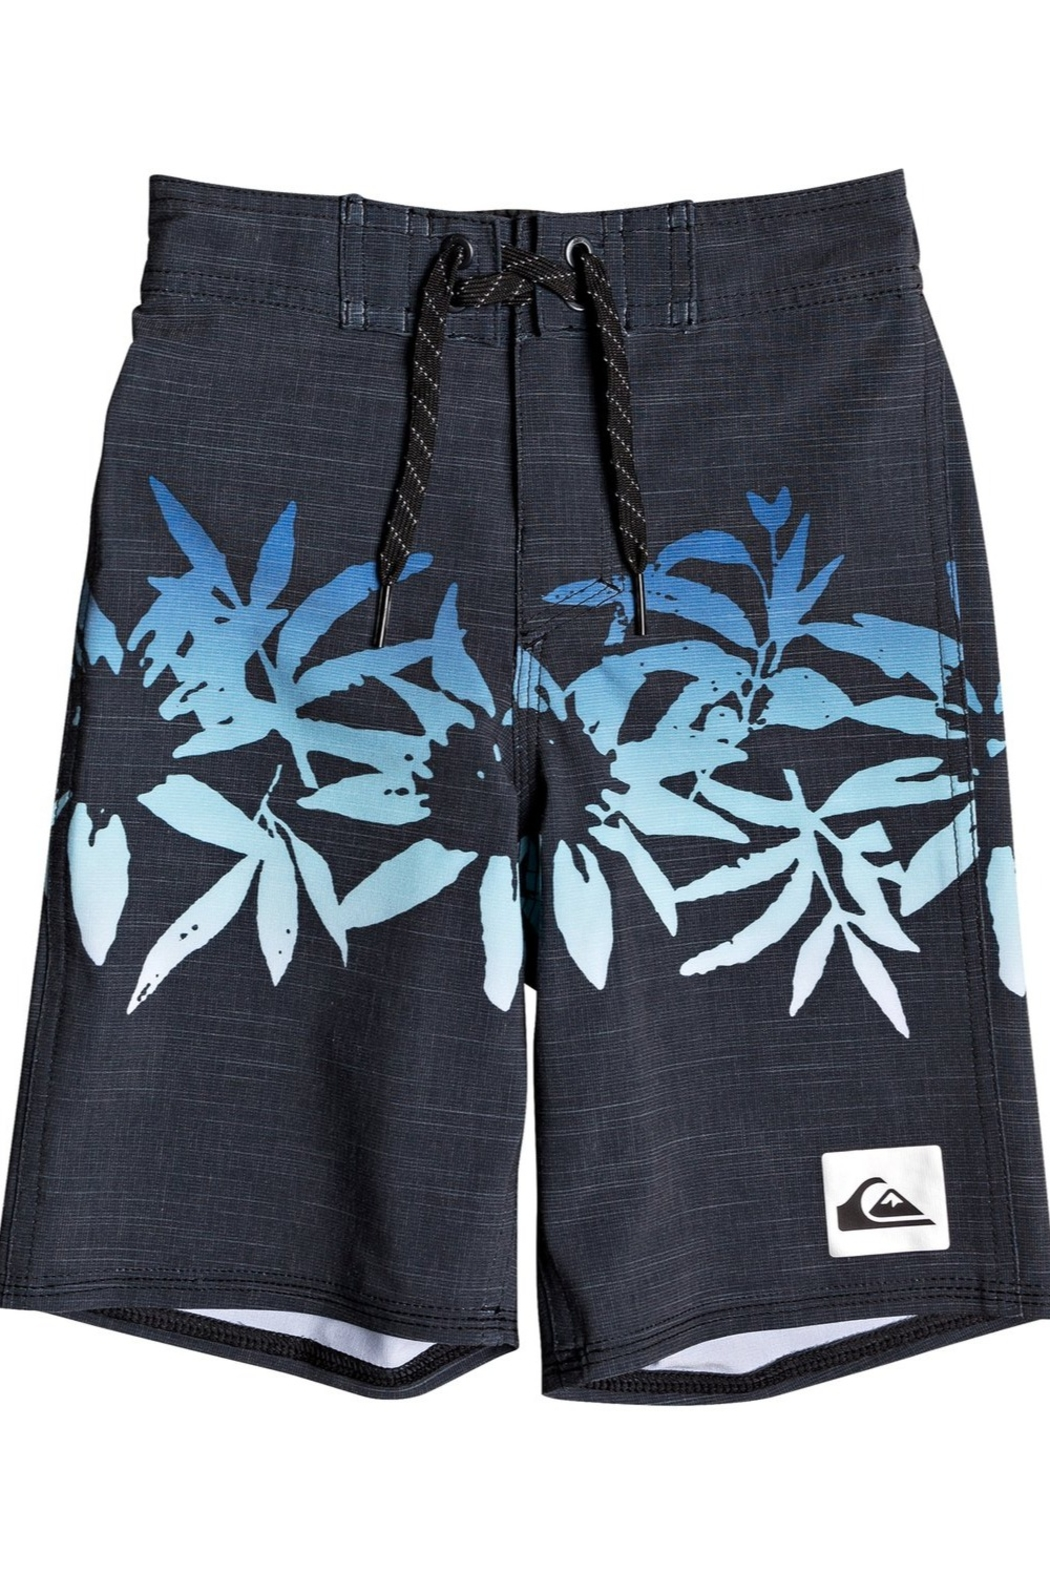 Quiksilver Highline Choppa Youth Boardshorts - Main Image